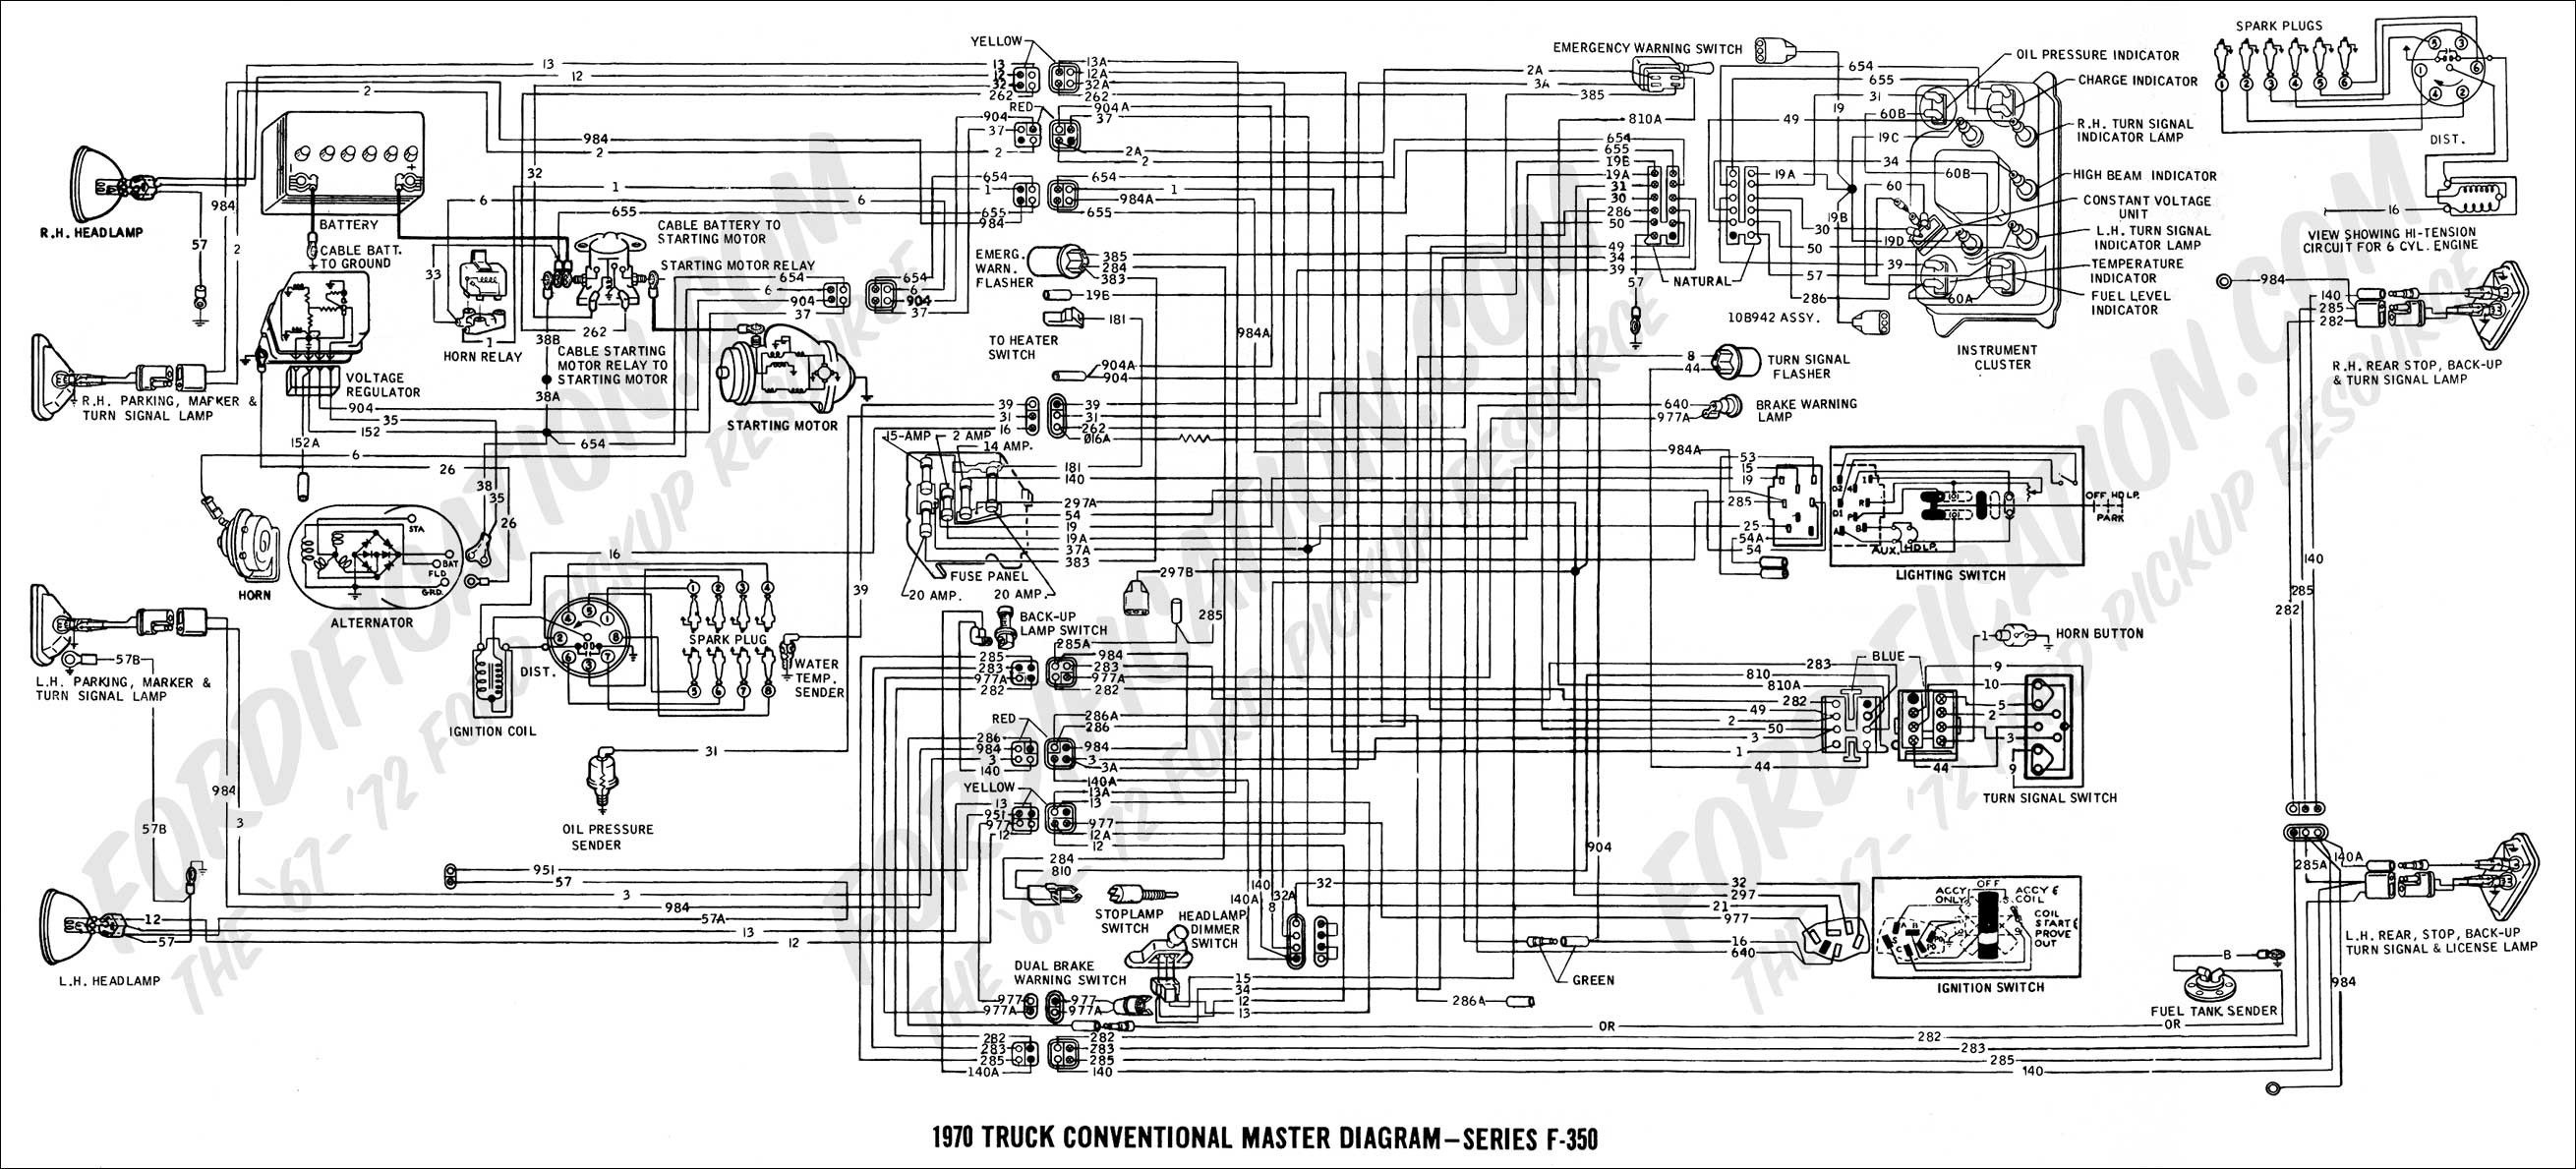 Ignition Relay Wiring Diagram Save Starter Wiring Diagram Unique Lucas Alternator Wiring Diagram E Wire